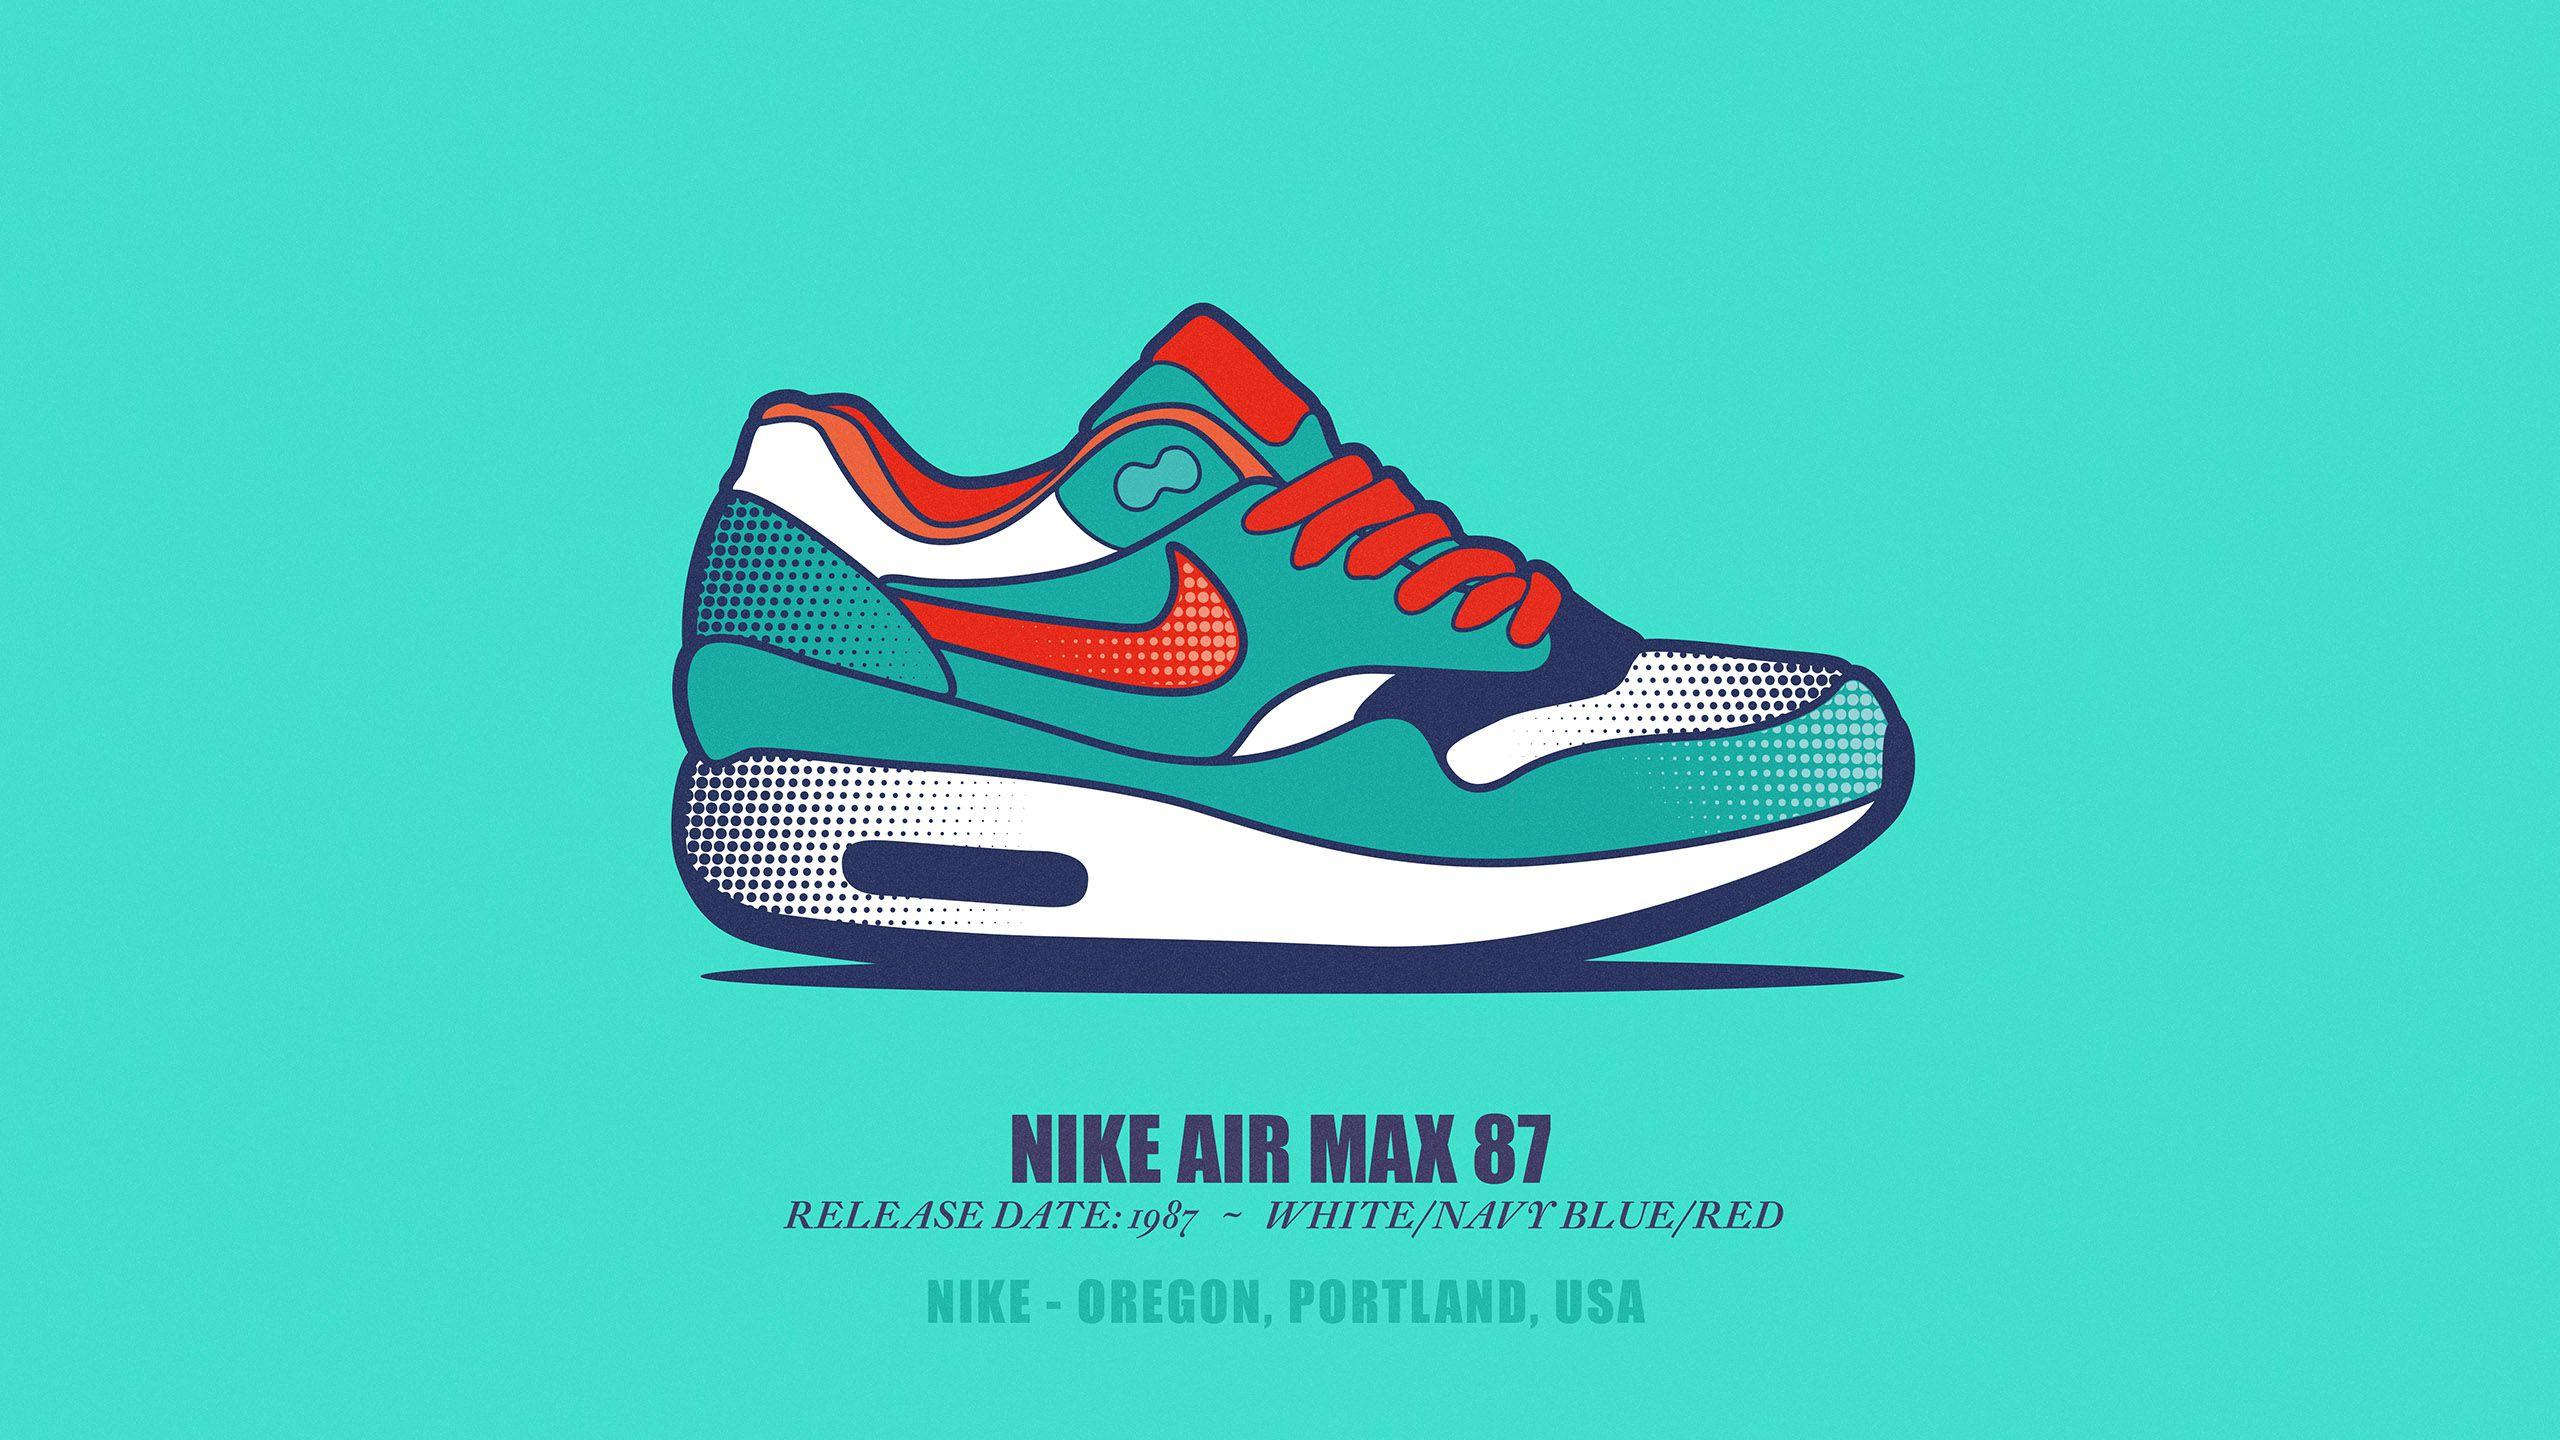 c104bad604 Nike Air Max Wallpapers Nike - Wallpaper Cave